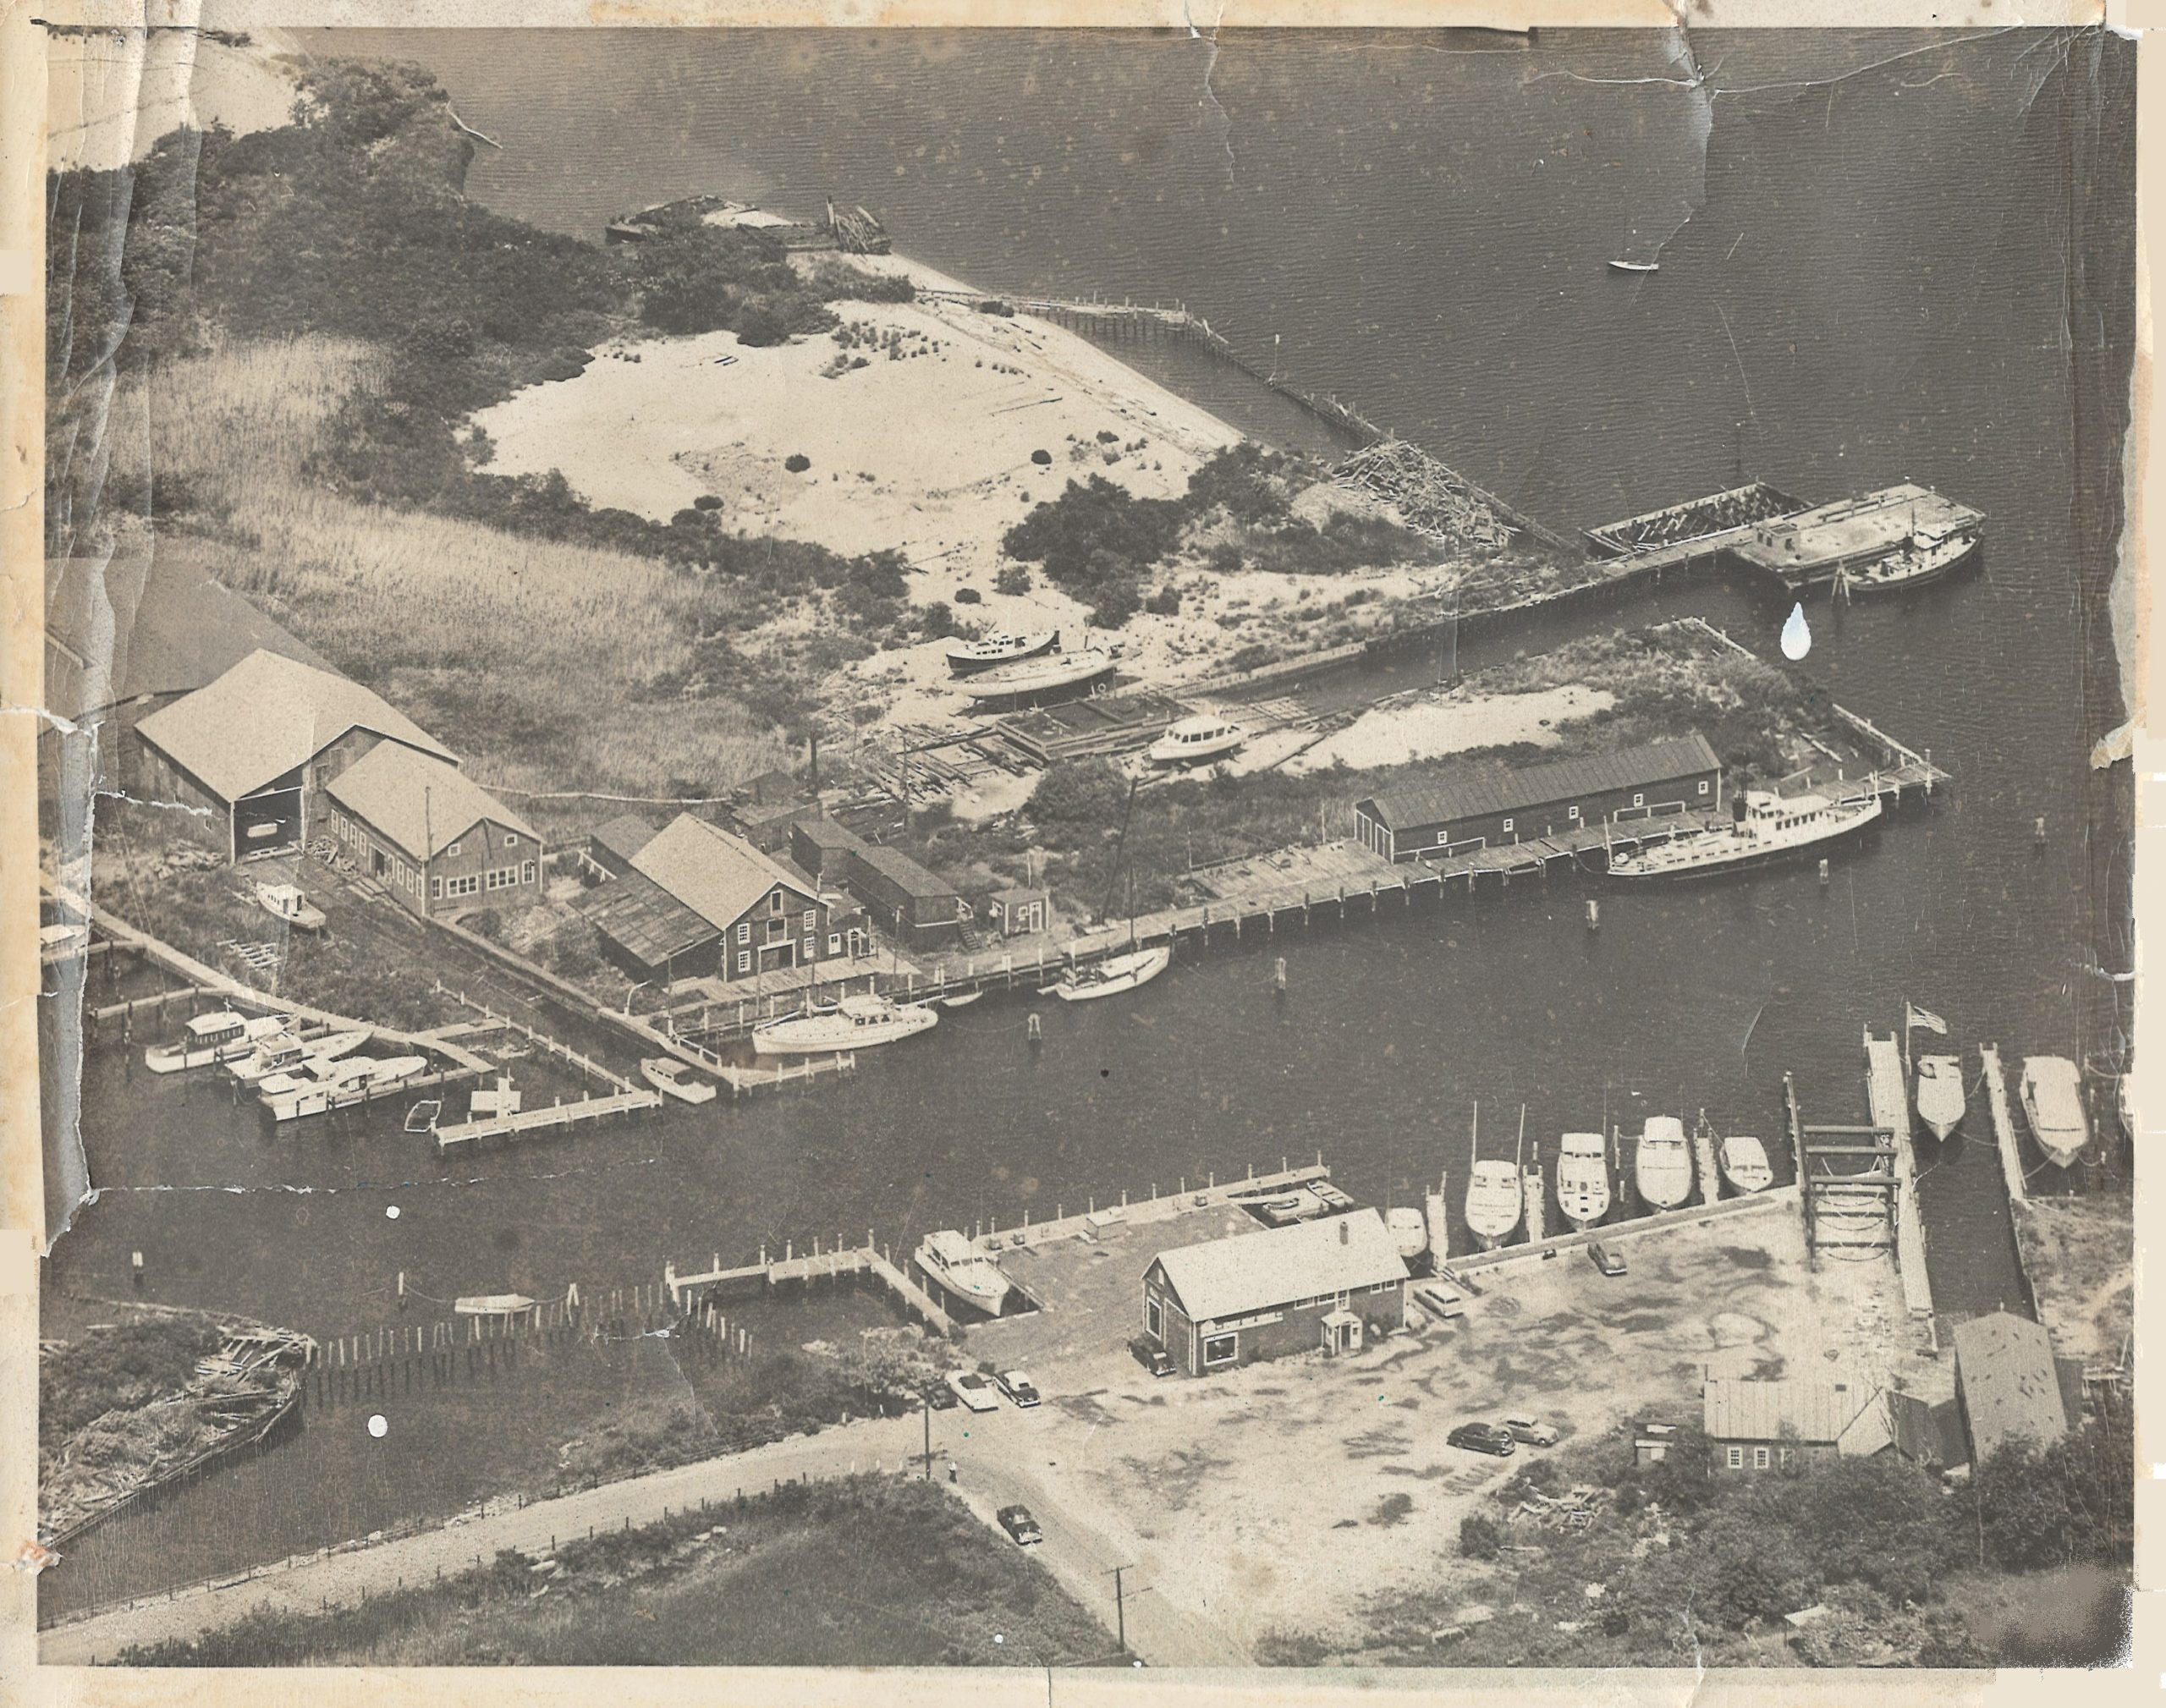 Aerial view of Essex Boat Works Circa 1954